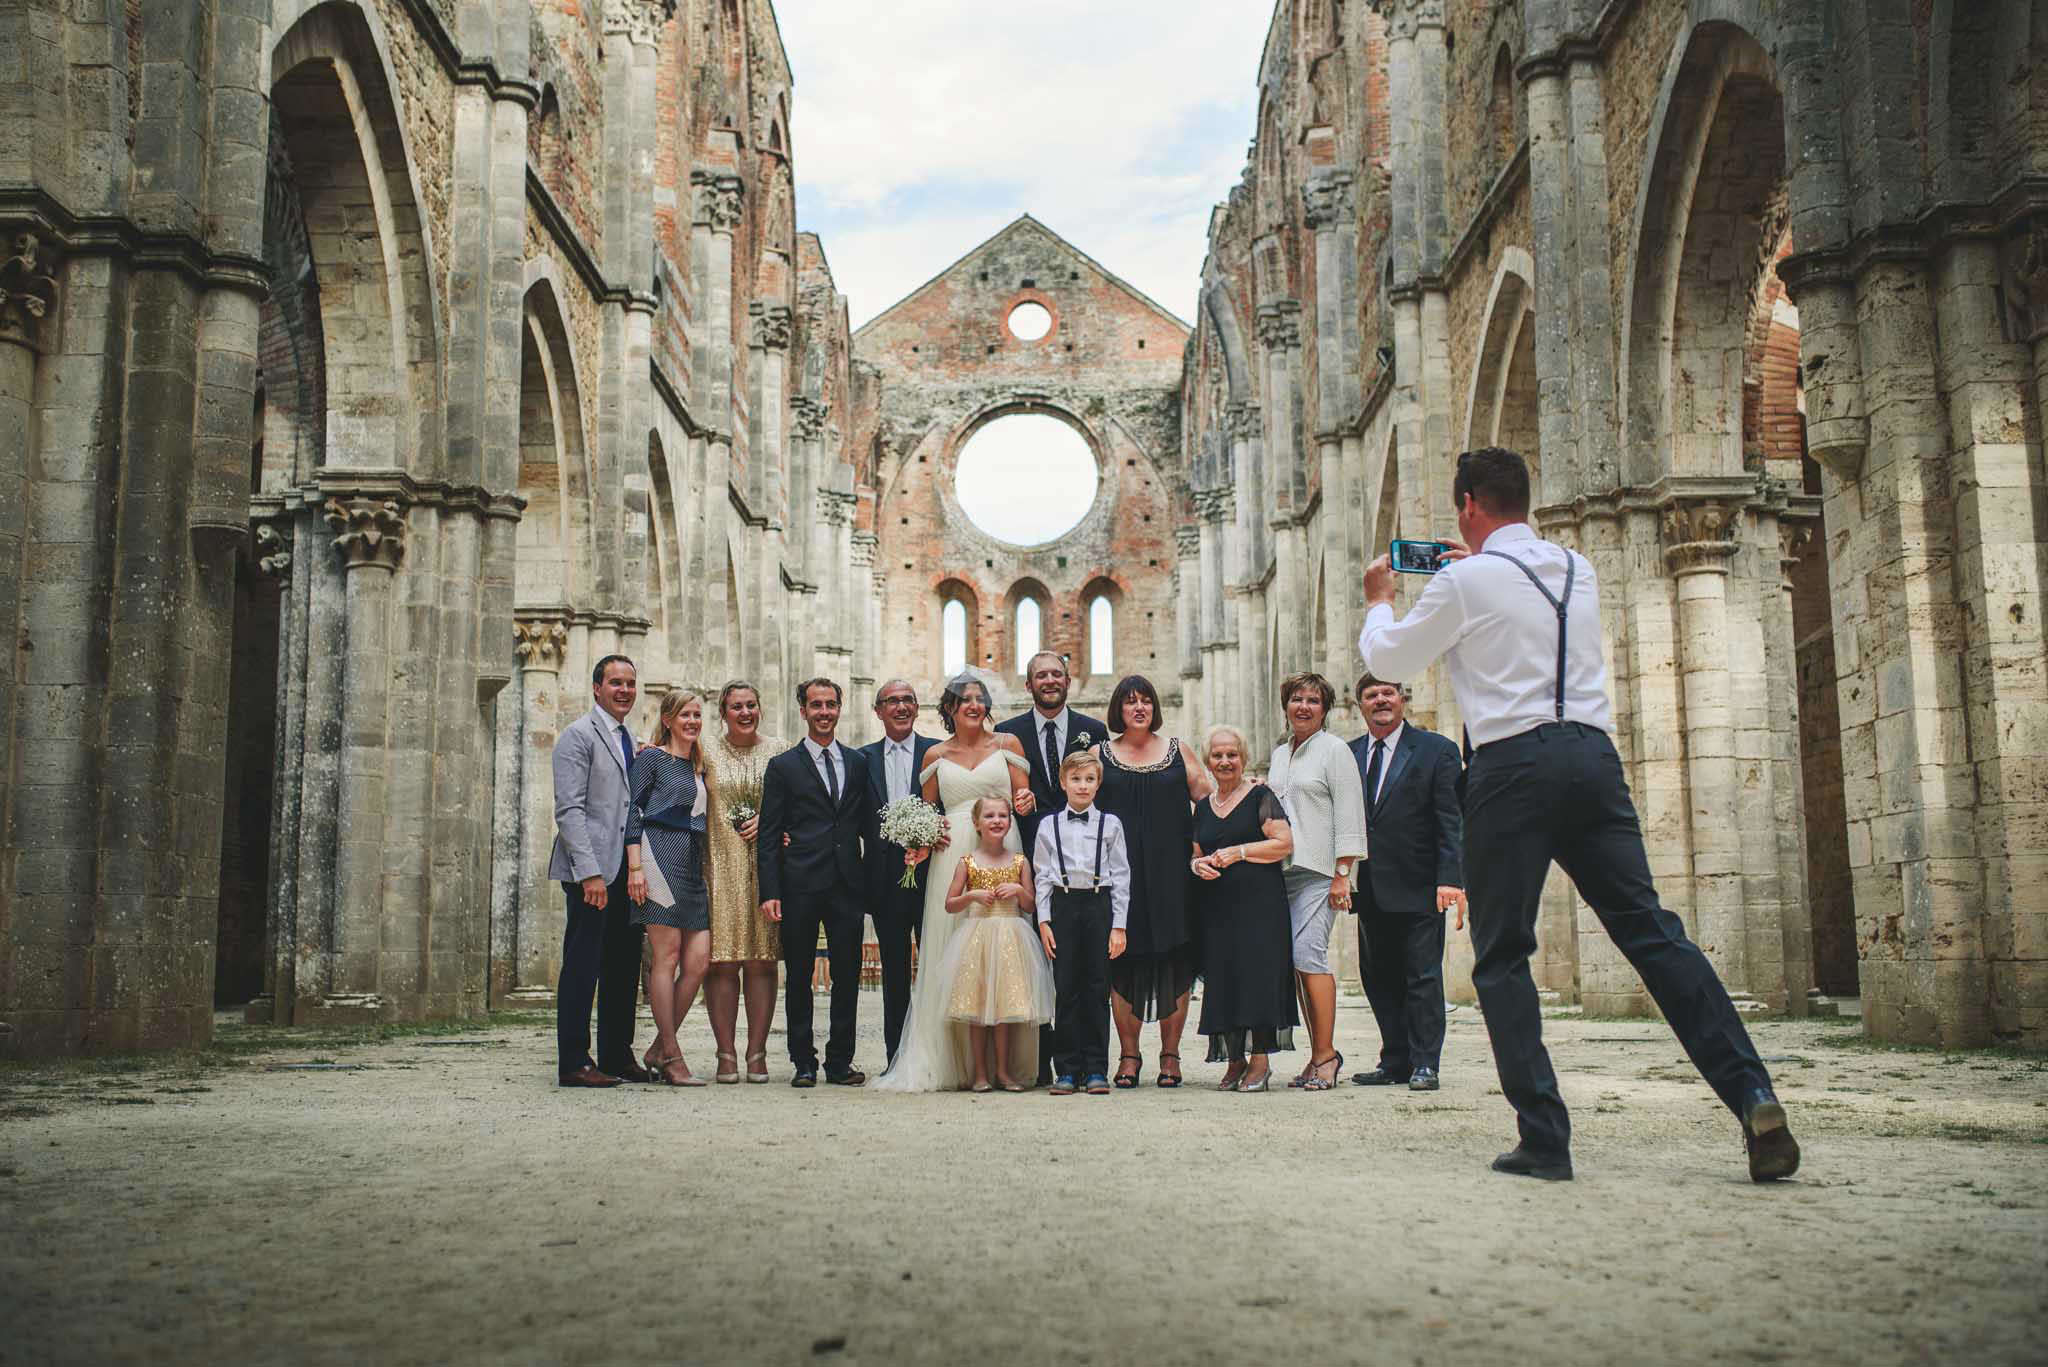 054-wedding-san-galgano-abbey-roberto-panciatici-photography